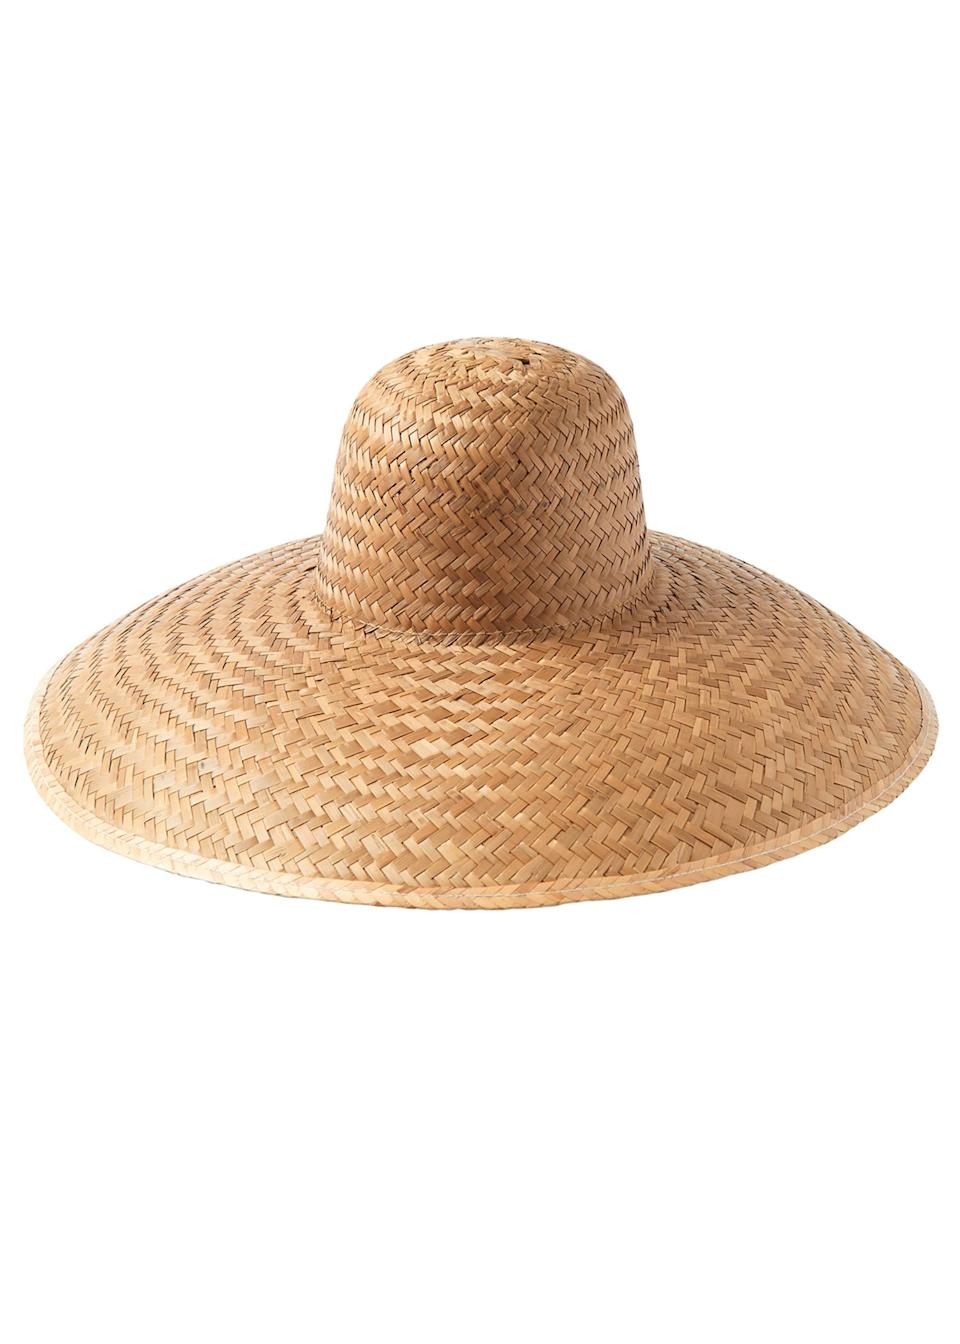 """<p>Erm, if this gram-worthy beach accessory isn't enough to inspire your next holiday then we're not quite sure what will. Would it work in the office? Asking for a friend… <a href=""""https://www.toa.st/uk/product/fhlai/clara+wide+brim+straw+hat.htm"""" rel=""""nofollow noopener"""" target=""""_blank"""" data-ylk=""""slk:Shop now"""" class=""""link rapid-noclick-resp""""><em>Shop now</em></a>. </p>"""